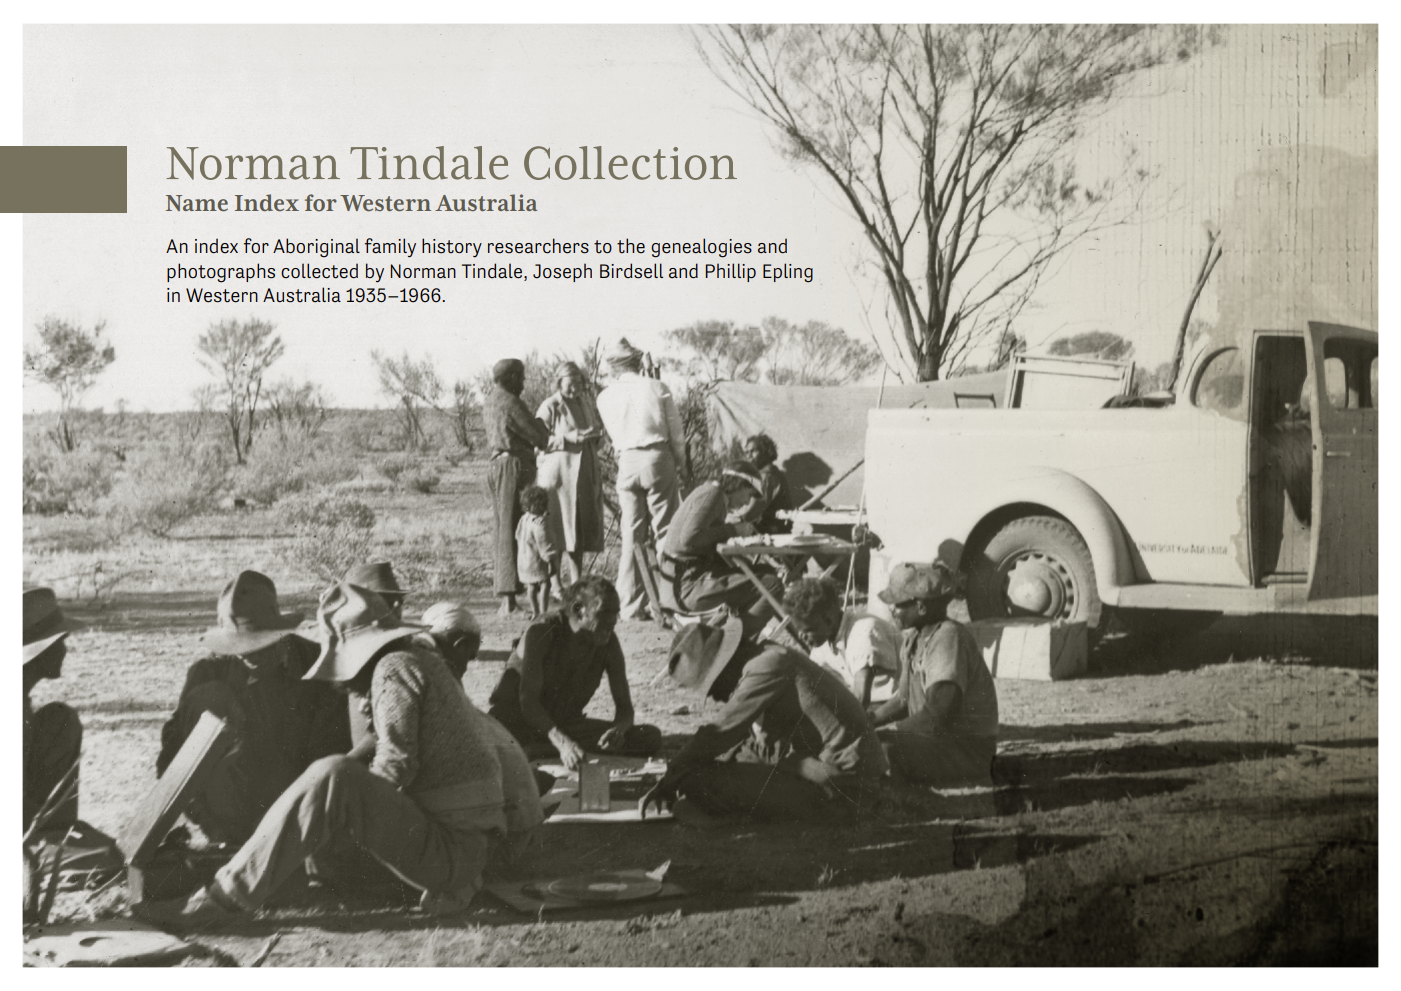 Norman Tindale Collection cover showing an old photograph